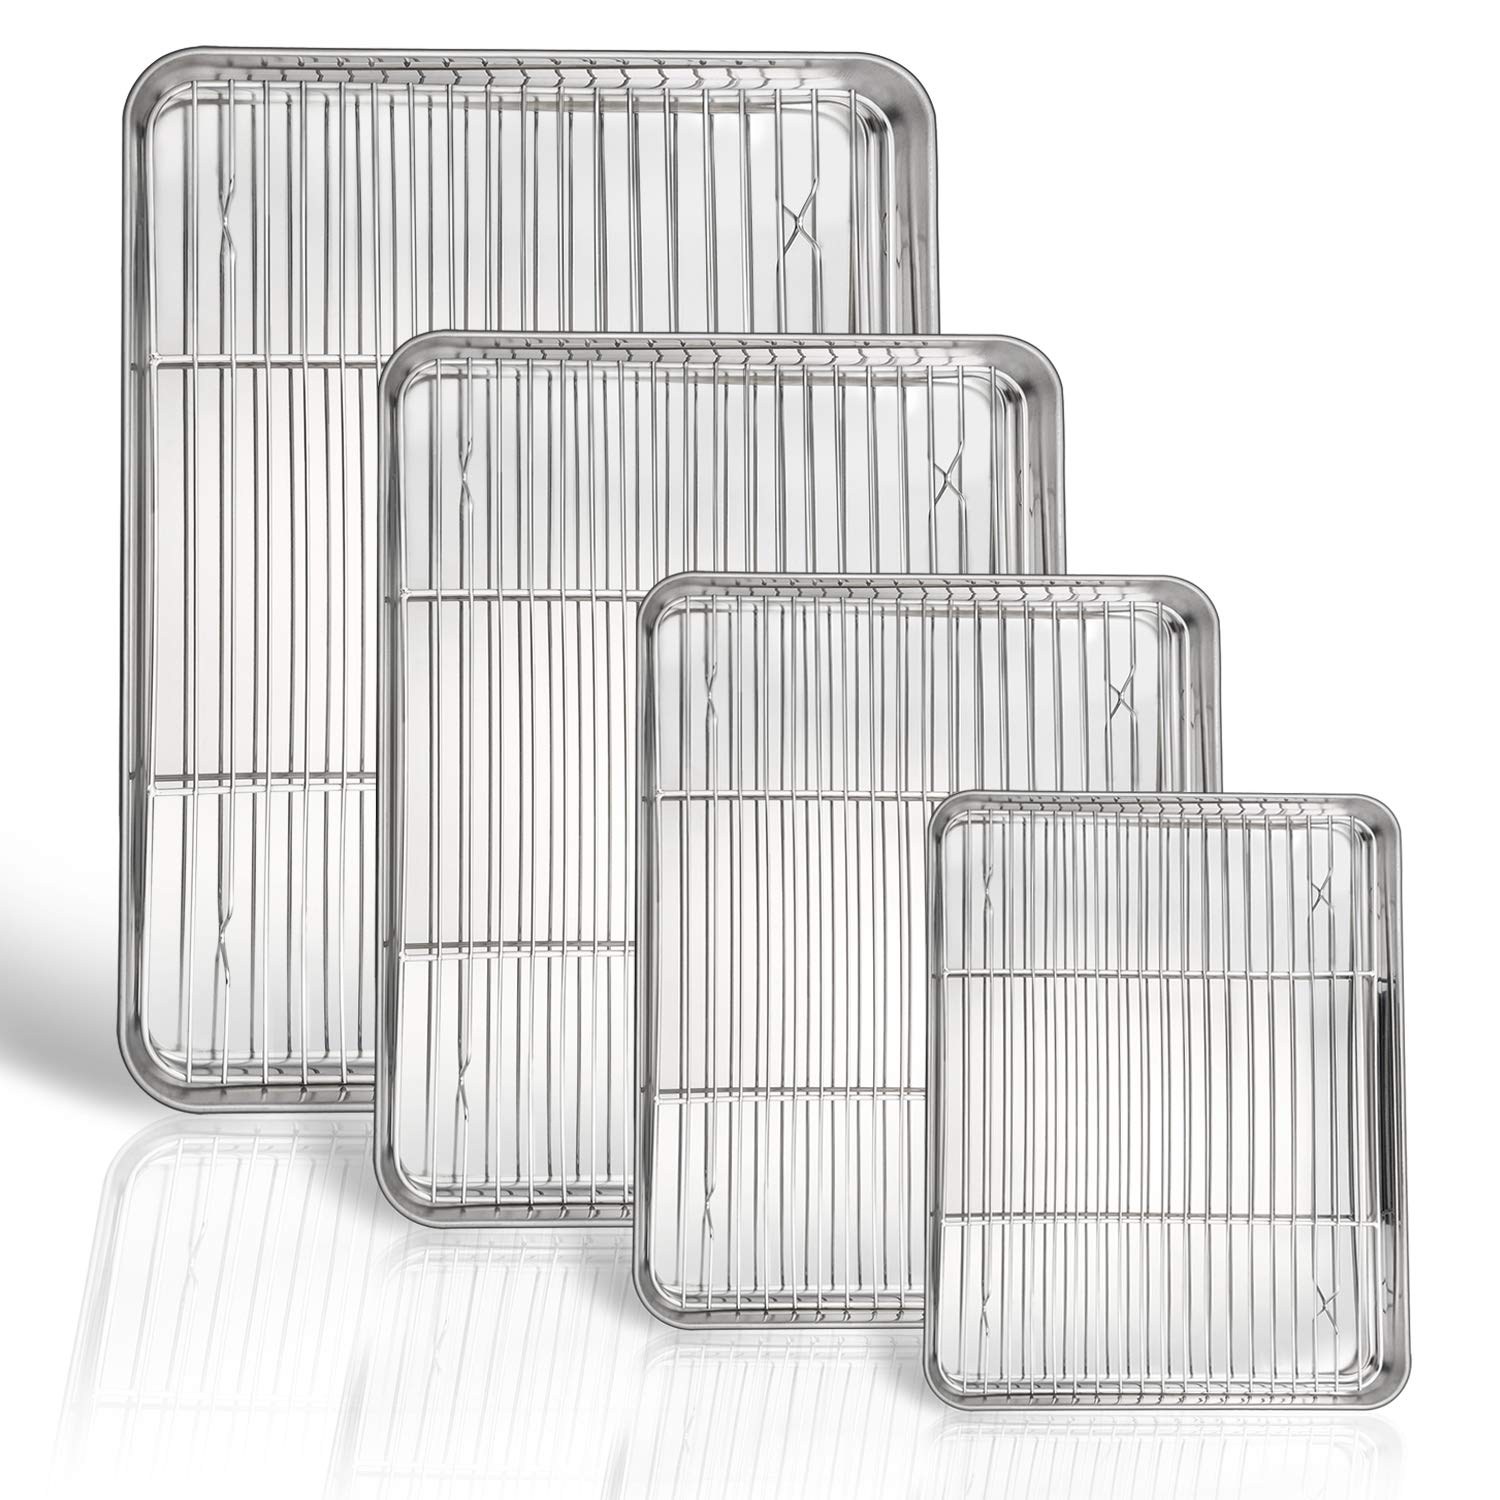 P&P CHEF Baking Sheet and Rack Set, 8 PACK (4 Sheets + 4 Racks), Stainless Steel Baking Pans Cookie Sheets with Cooling Rack, Healthy & Mirror Finish,Oven & Dishwasher Safe